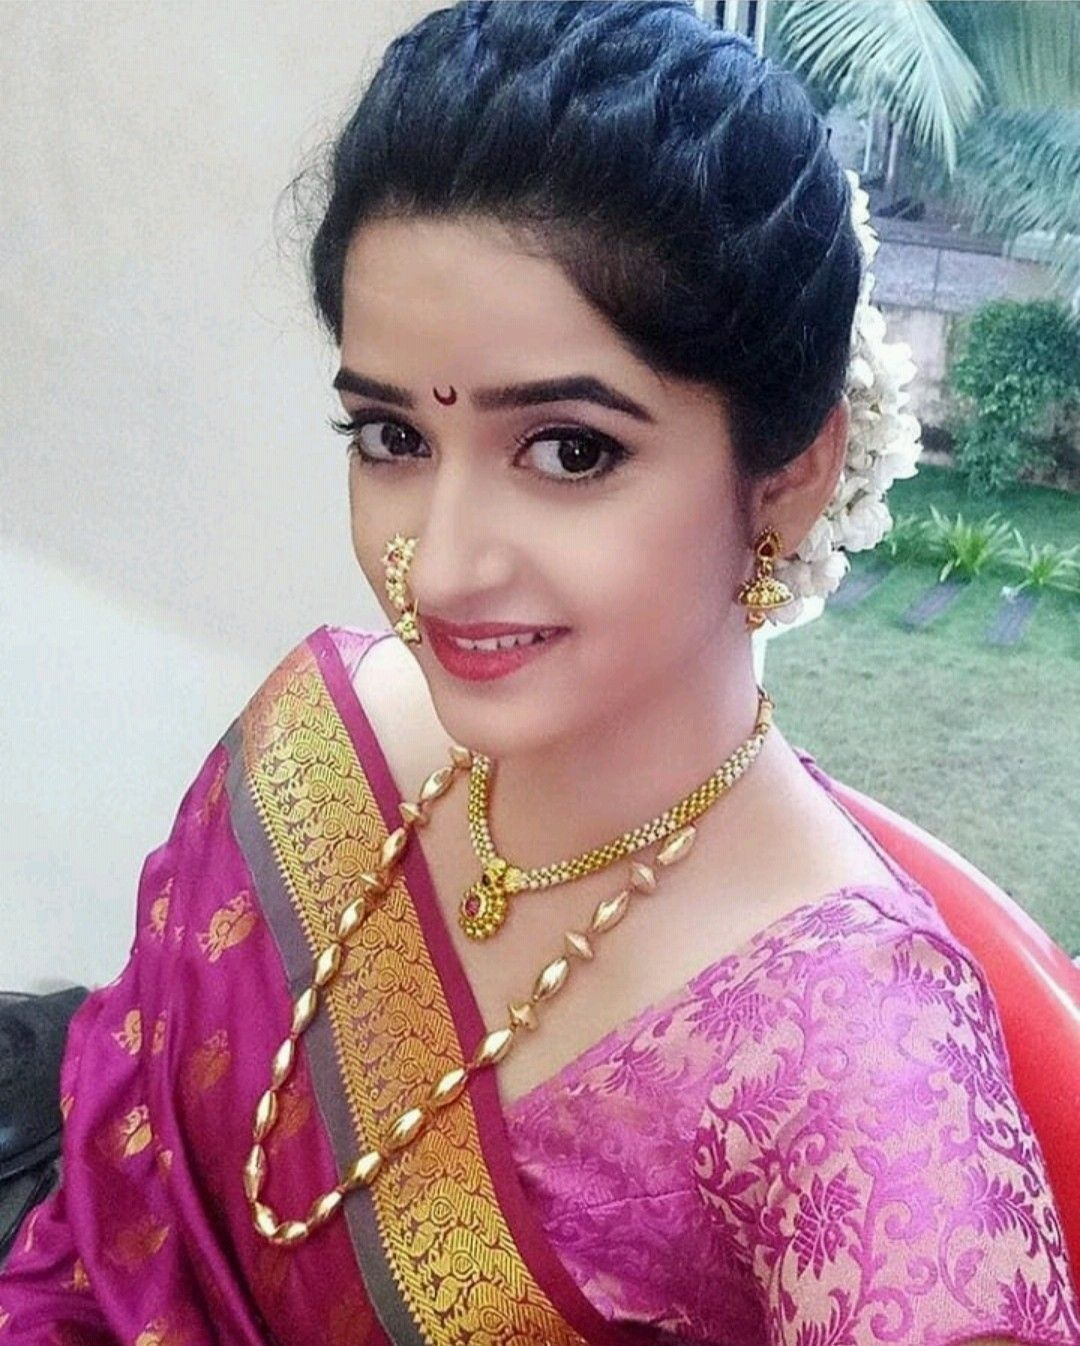 pin by roma on jewelry set in 2019 | saree hairstyles